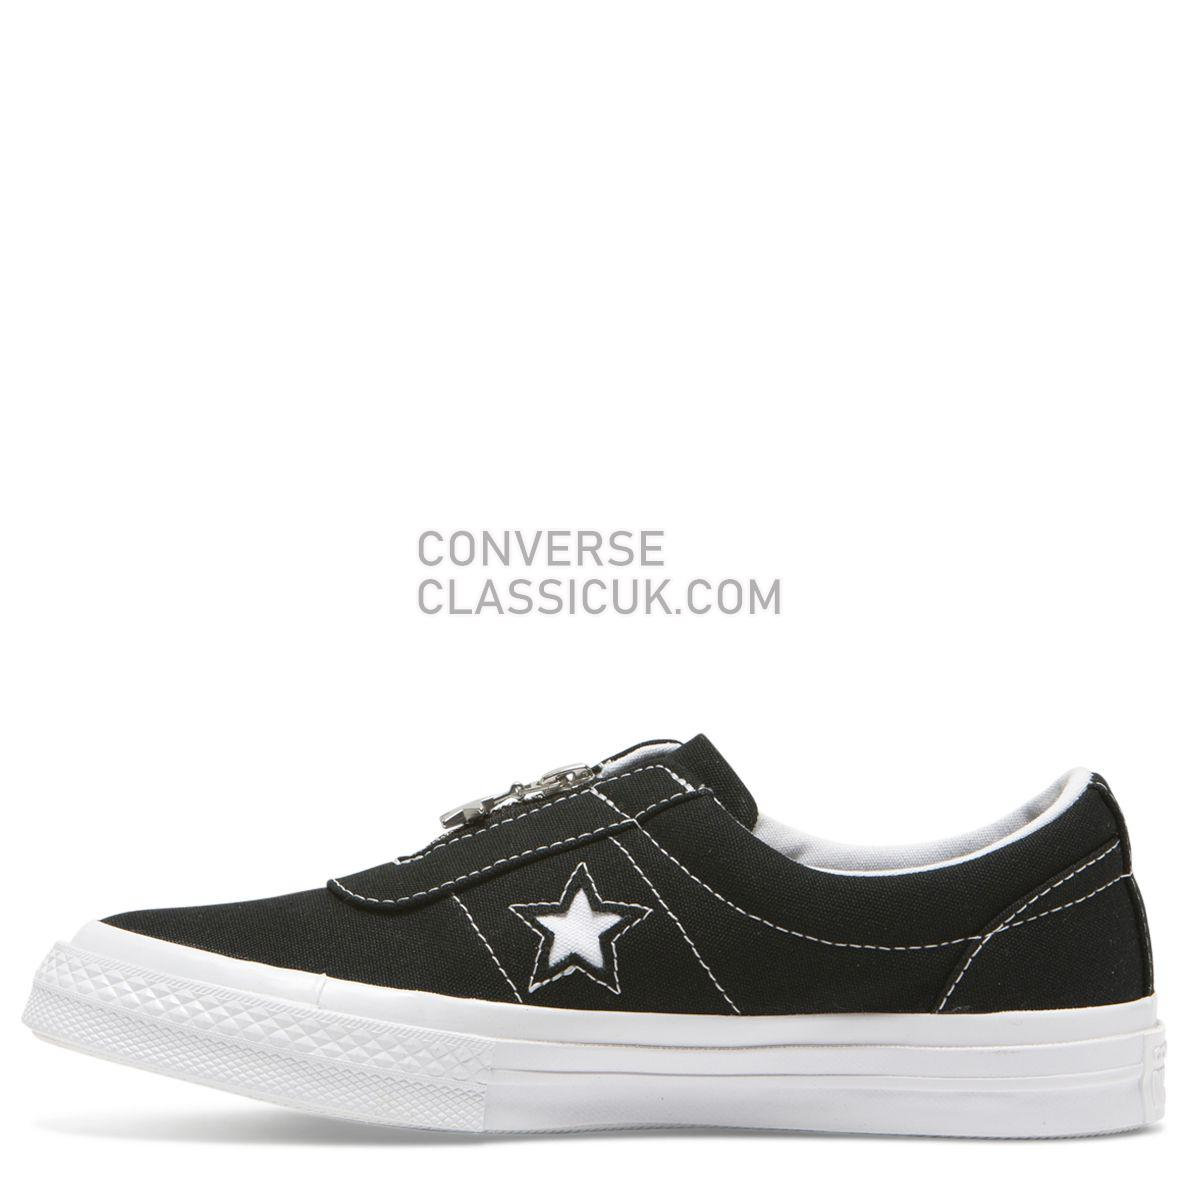 Converse One Star Sunbaked Slip Low Top Black Womens 564206 Black/White/White Shoes